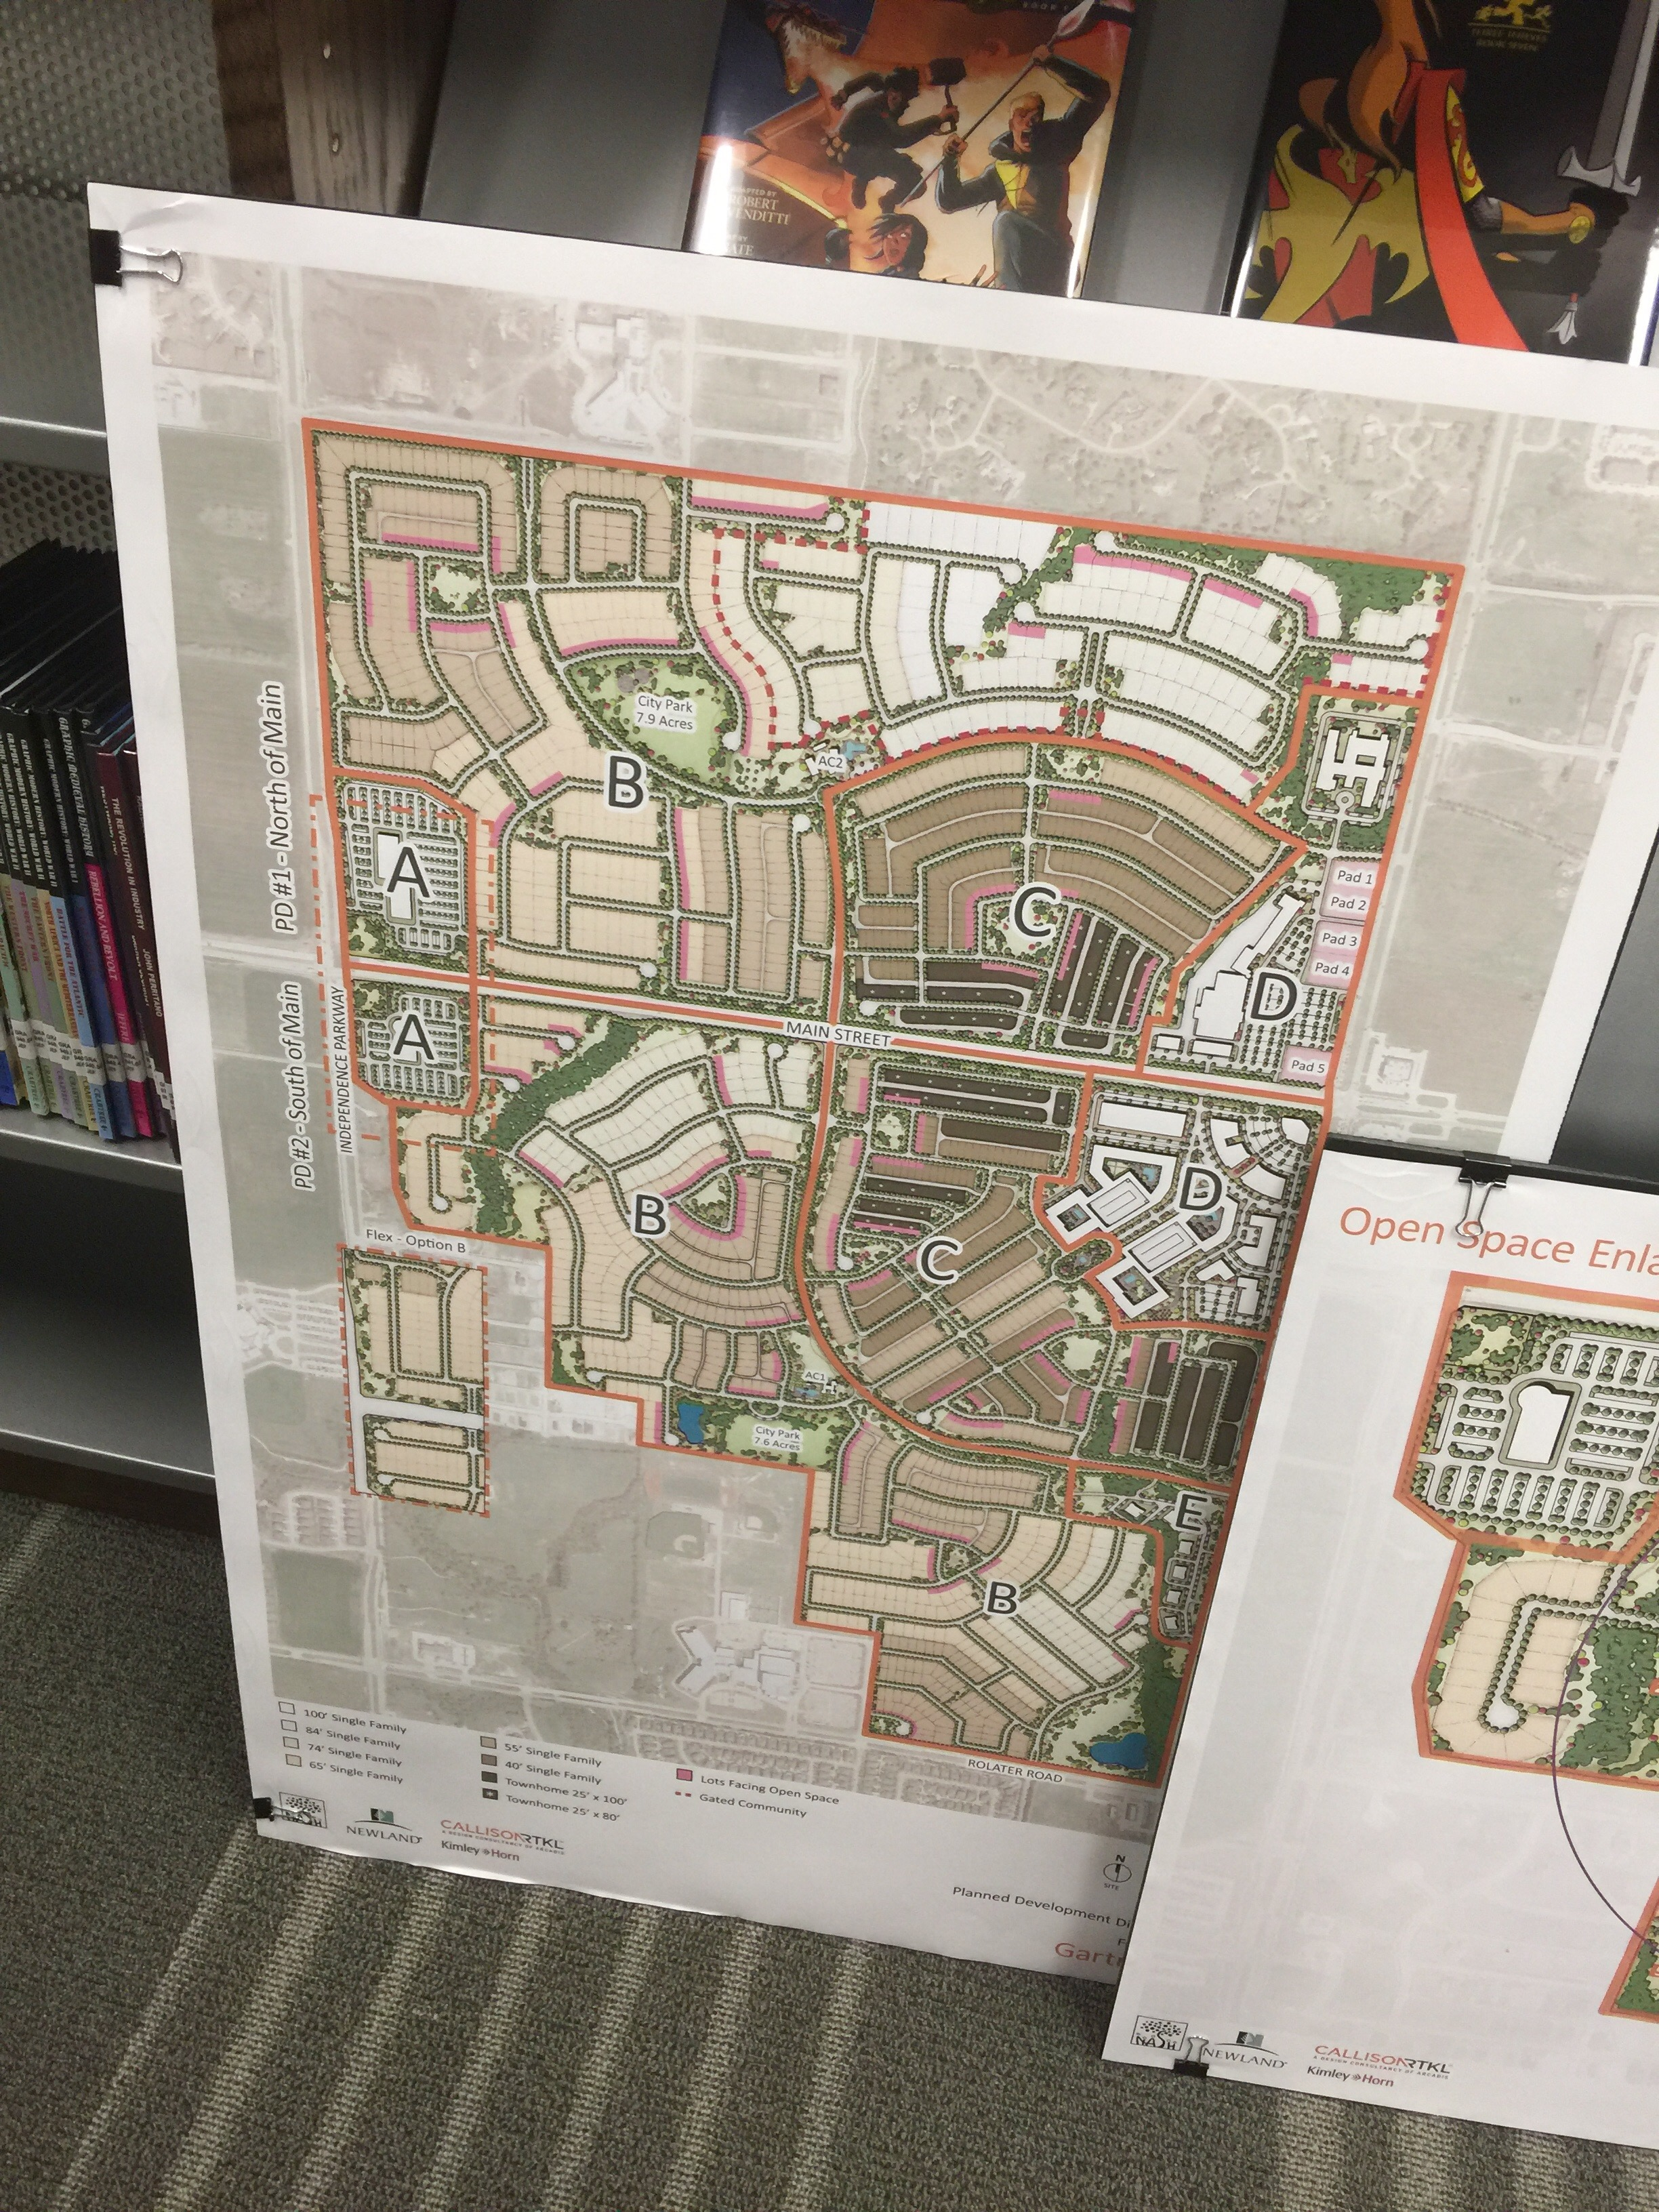 Tensions Rise in Frisco at last nights Gartner Tract Zoning ... on frisco mall map, city of frisco utilities, collin county zoning map, city of frisco certificate of occupancy, frisco isd zoning map, city of frisco recycling, city of frisco parks, frisco texas on texas map, cameron county zoning map,